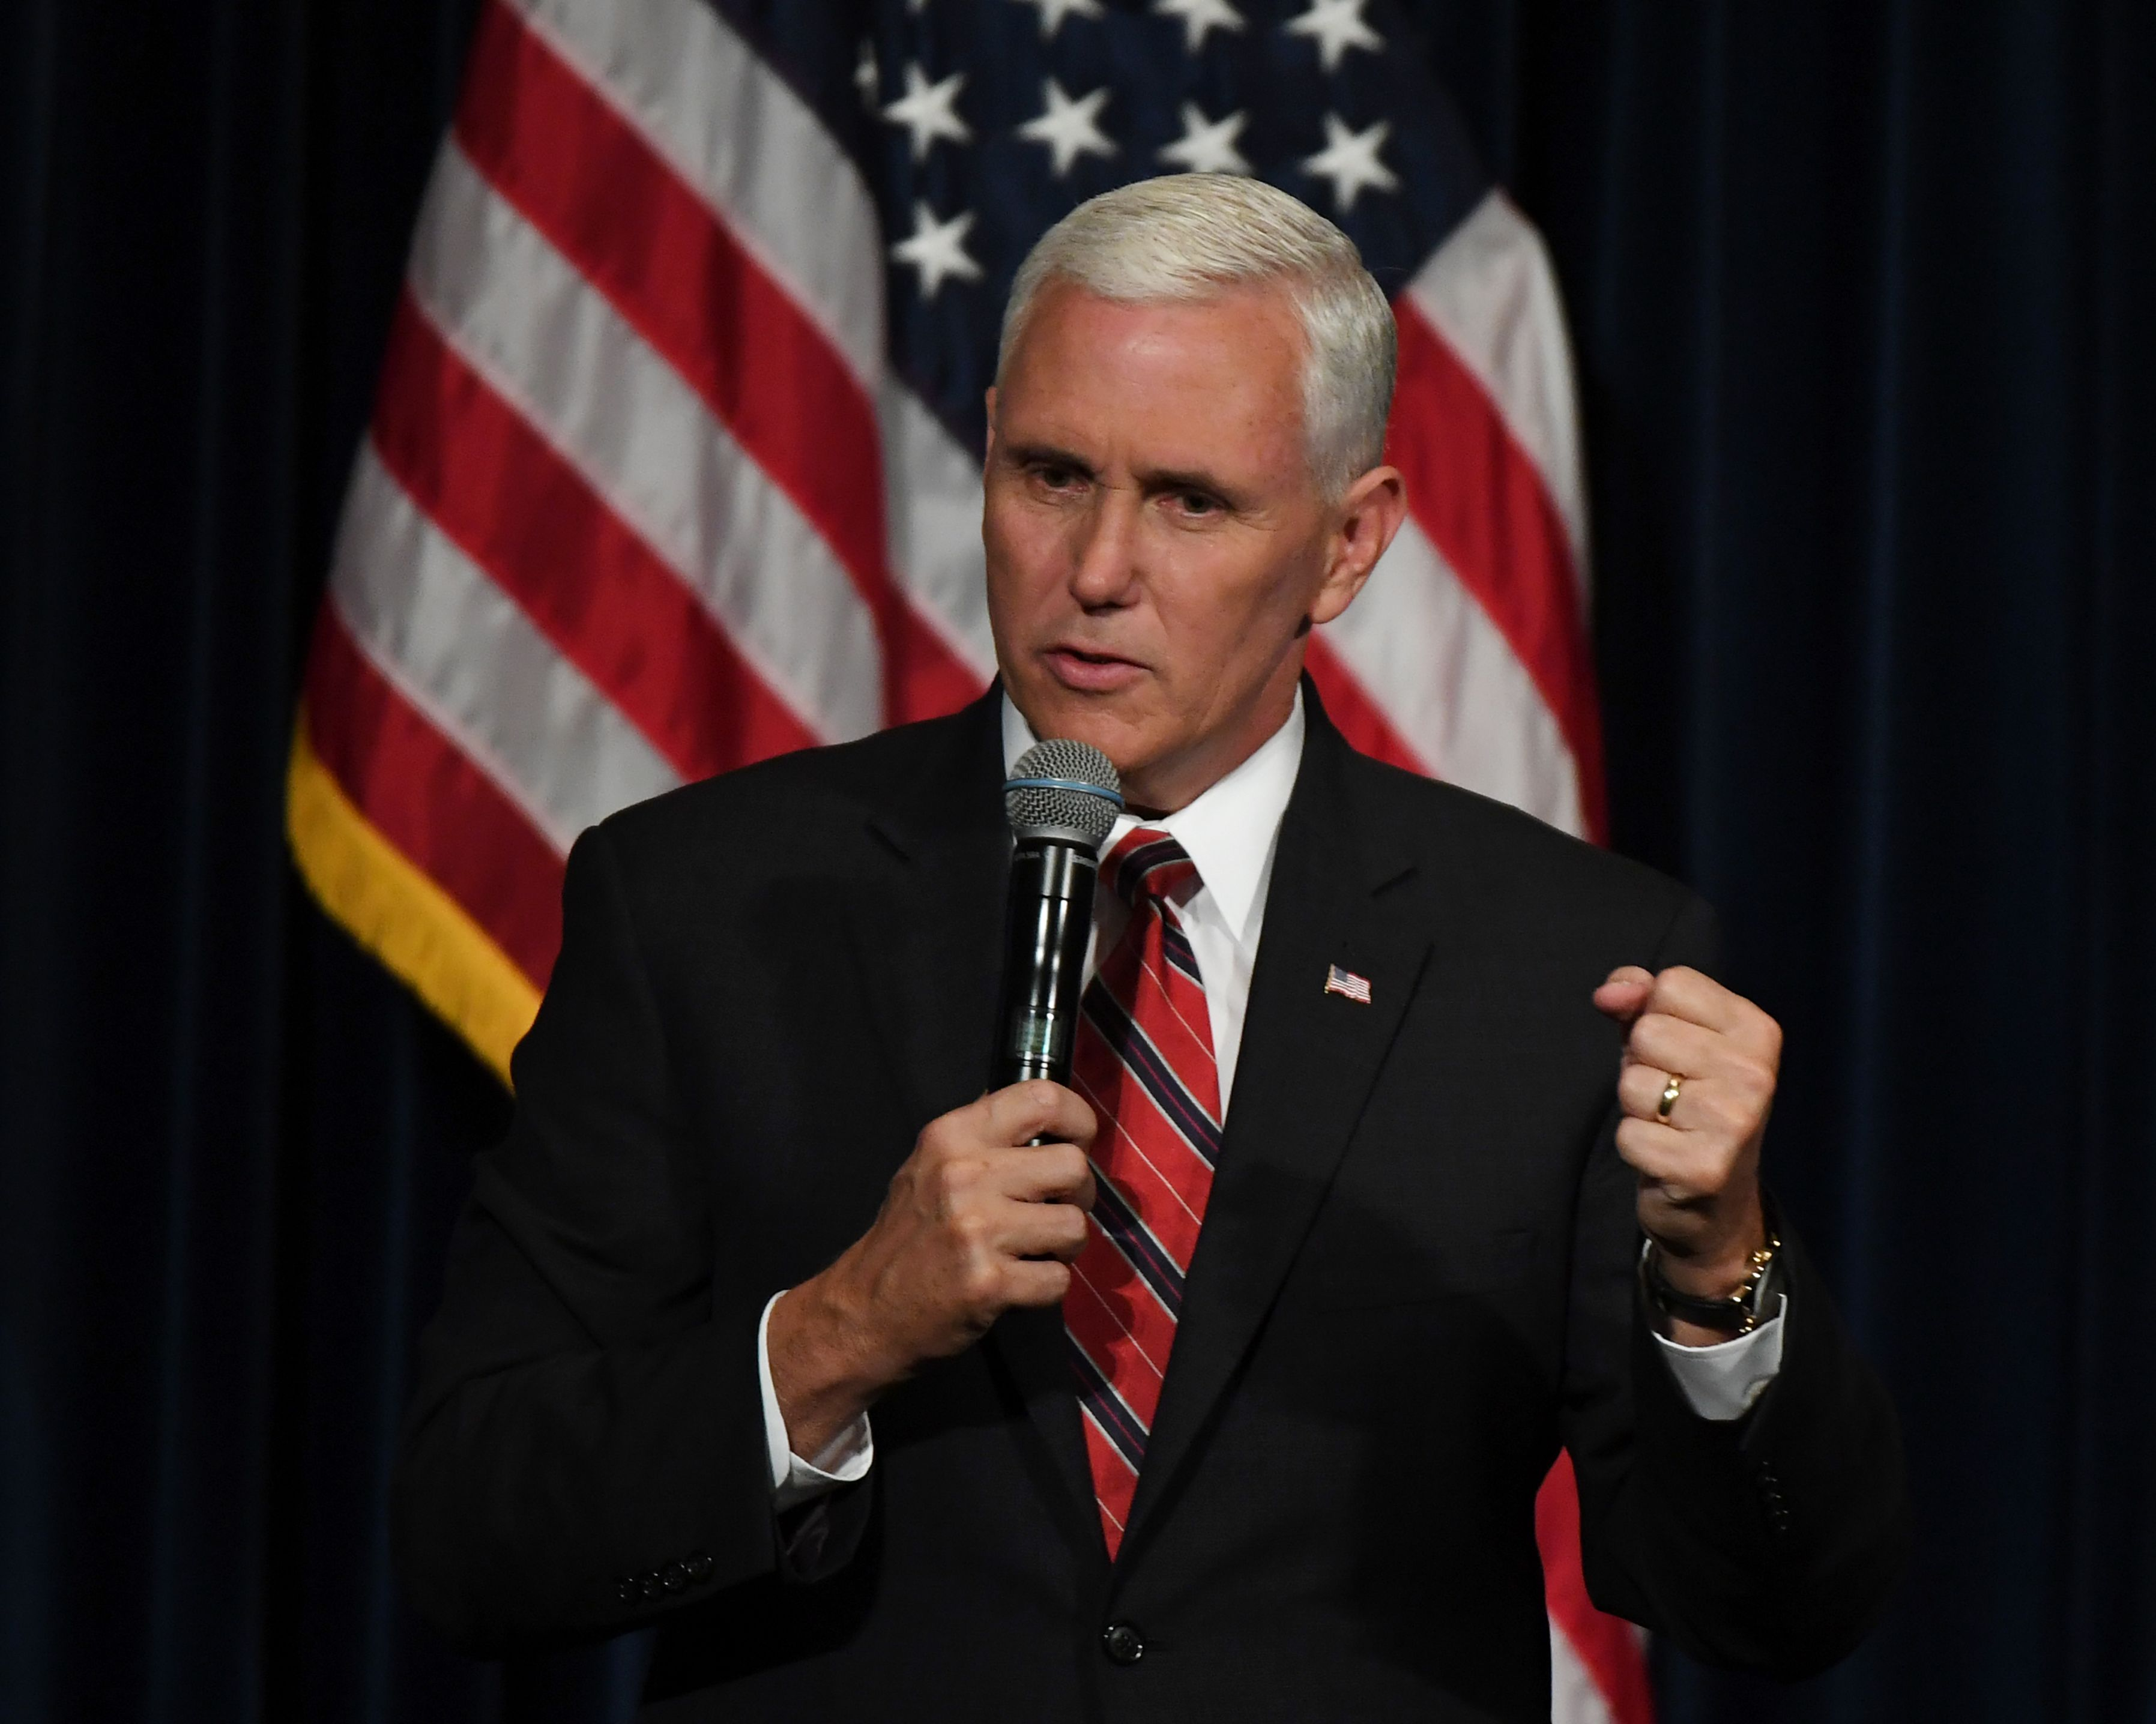 US Vice Presidential candidate Mike Pence speaks to Republicans at the Ronald Reagan Presidential Library in Simi Valley, California on Sept. 8, 2016.